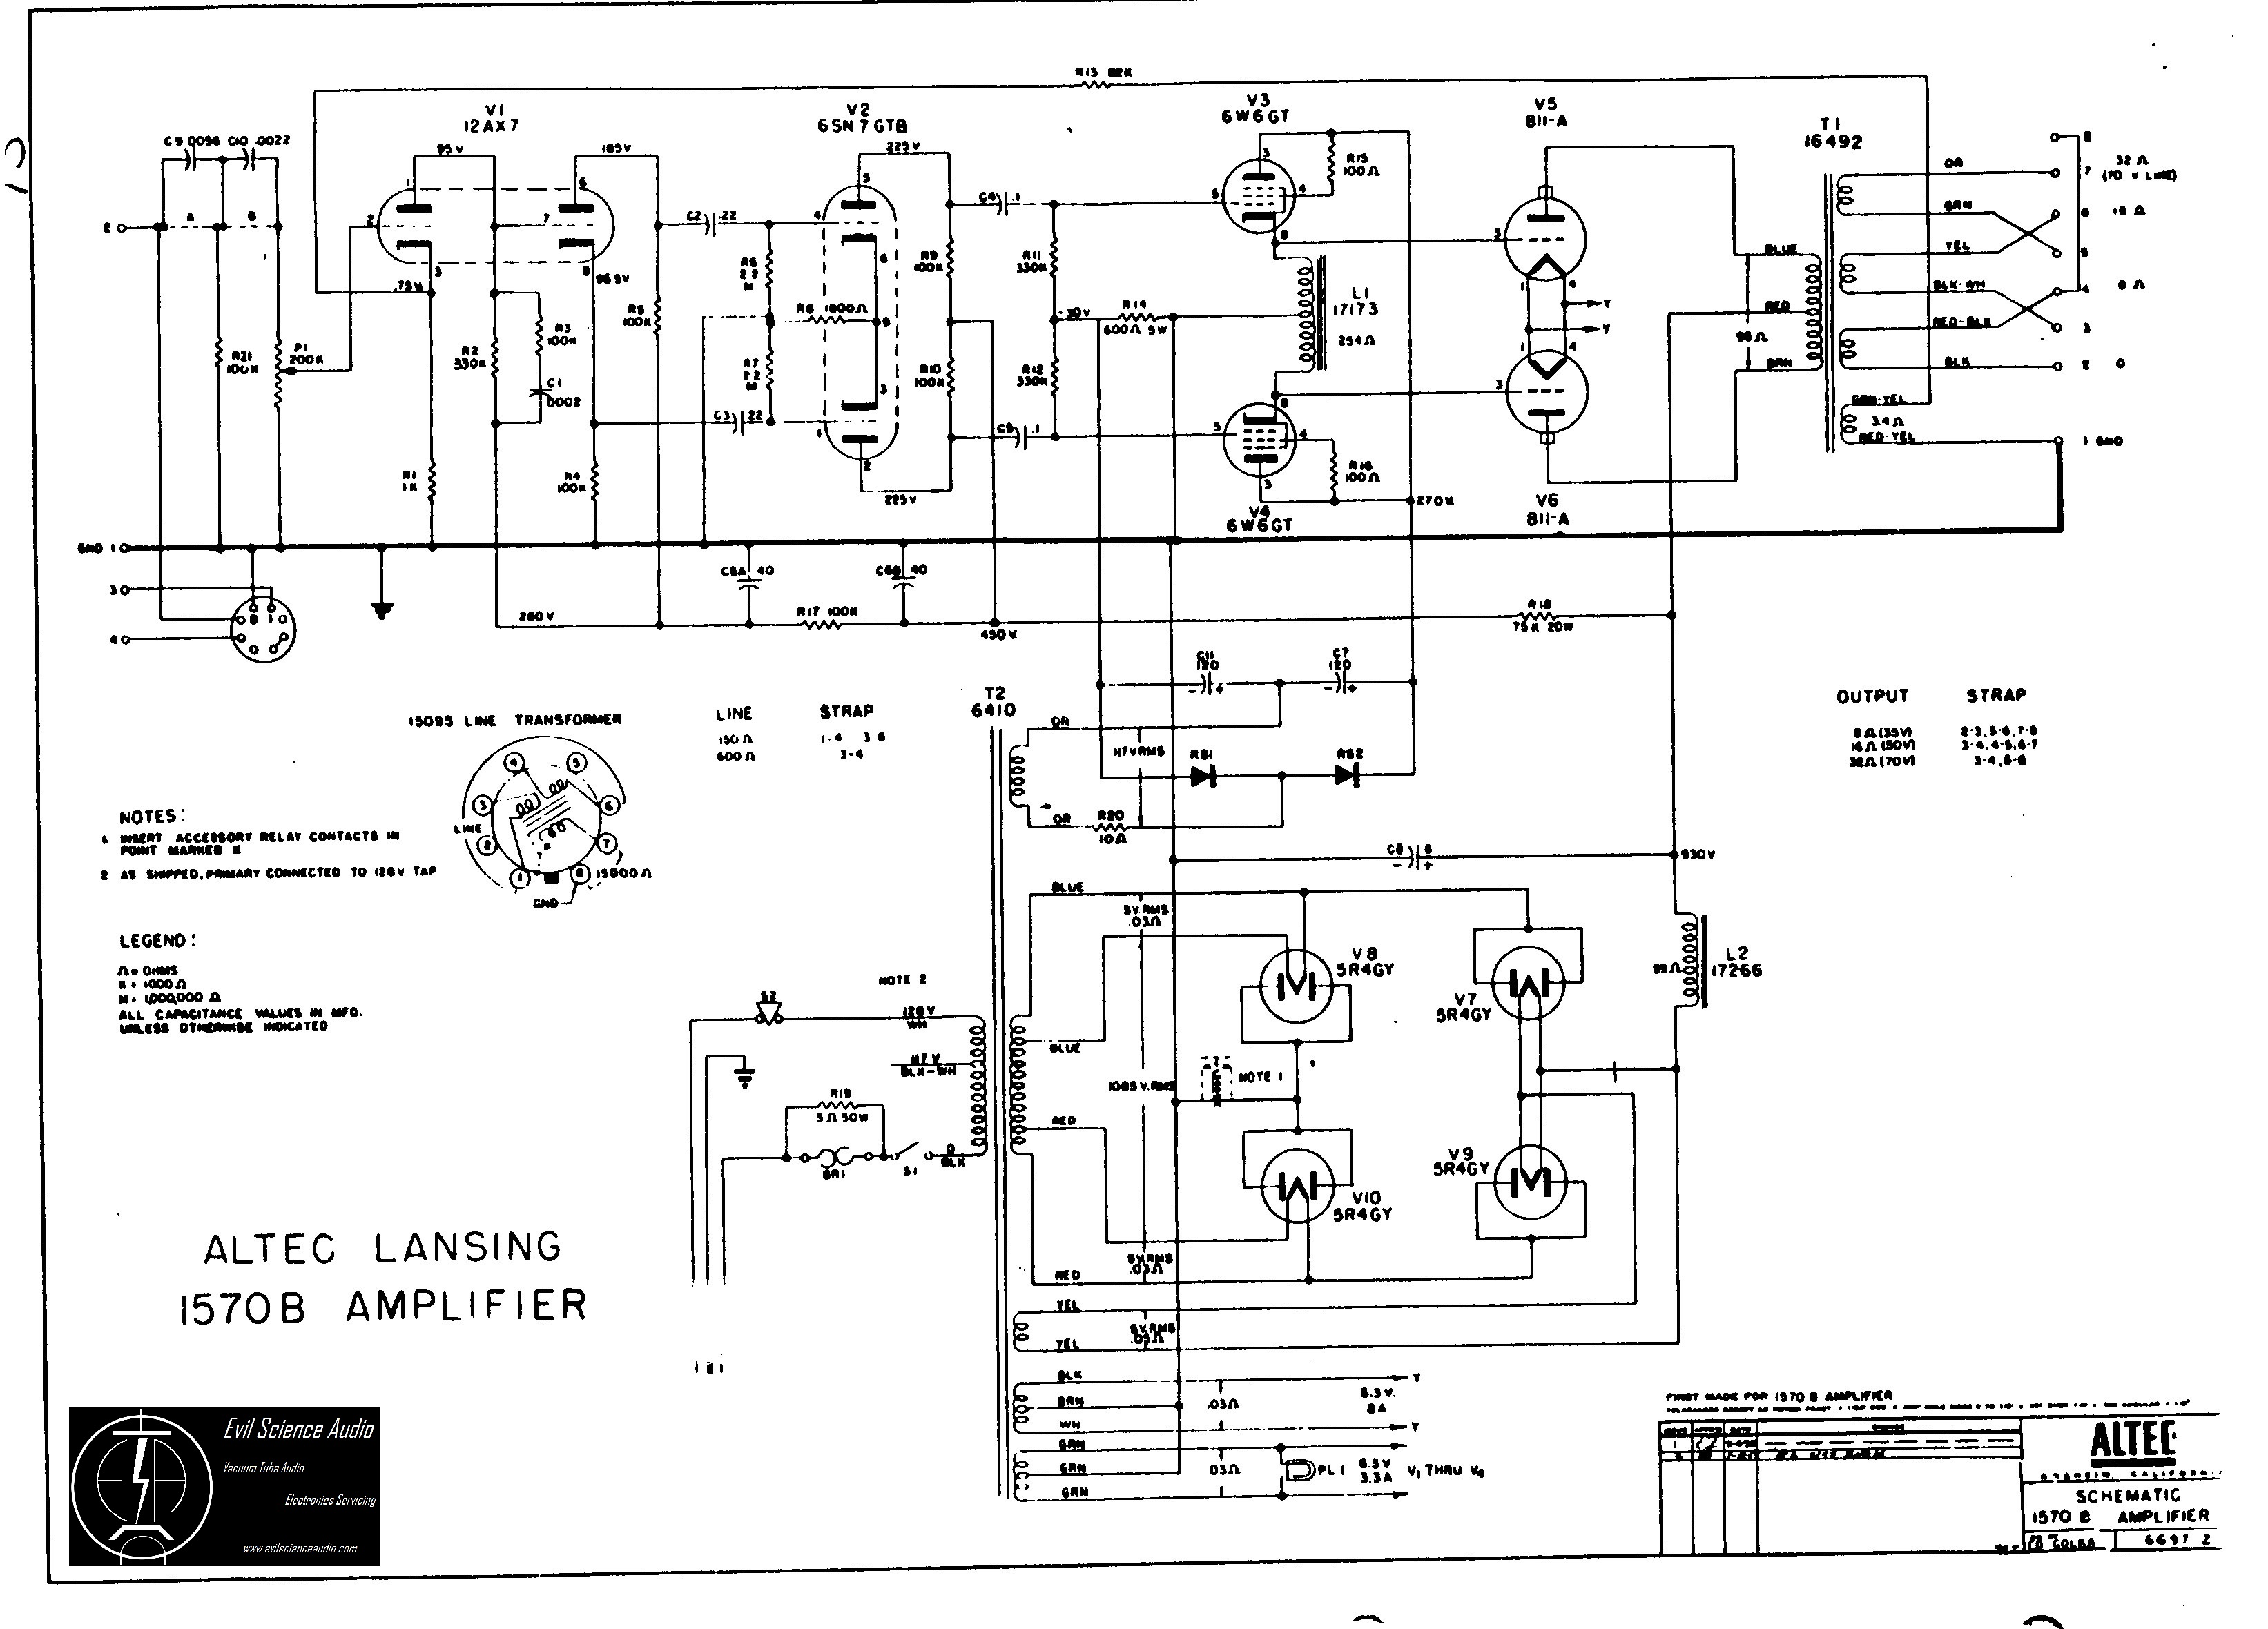 acs295 wiring diagram cua jenouson uk \u2022 Roland Keyboards acs295 wiring diagram wiring diagram rh a8 ansolsolder co light switch wiring diagram basic electrical wiring